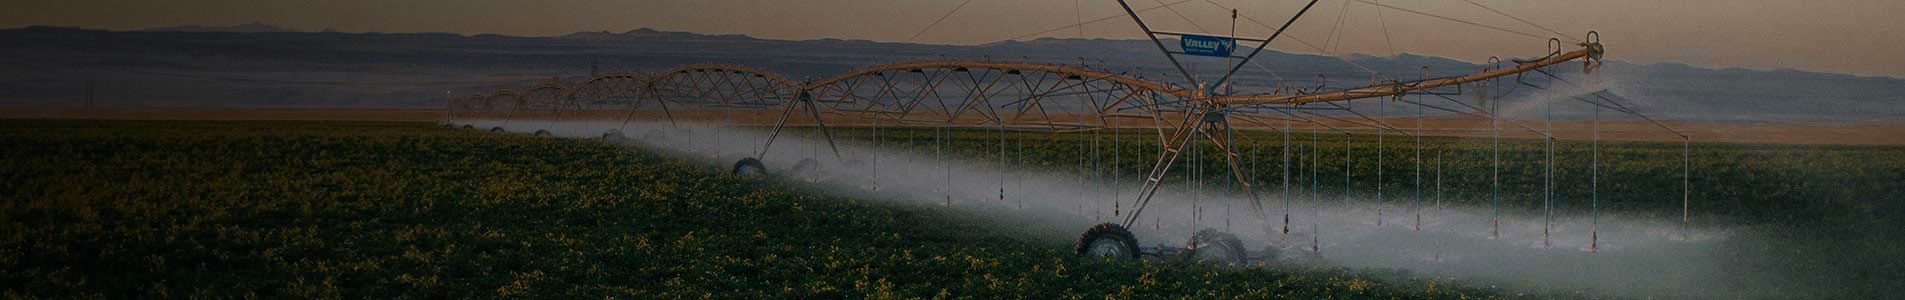 valley center pivot irrigation